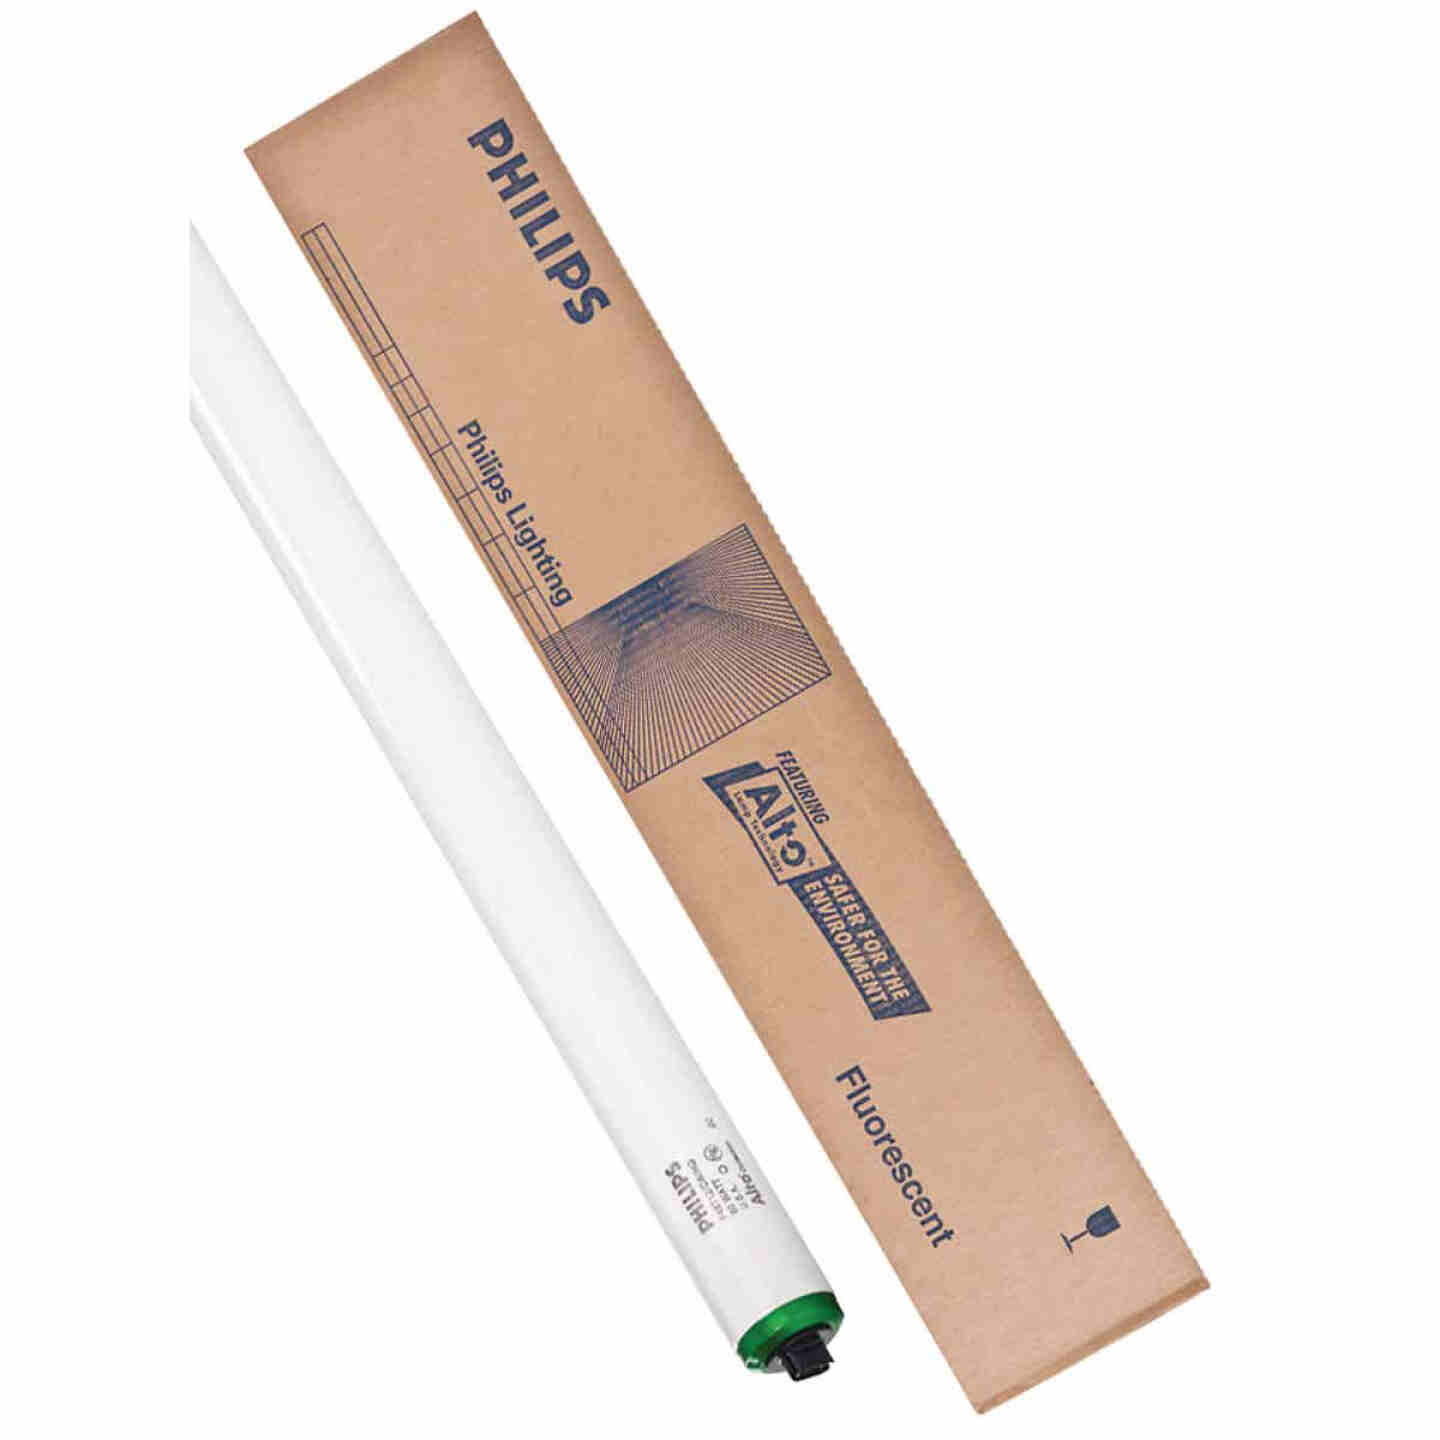 Philips 60W 48 In. Cool White T12 Recessed Double Contact High Output Fluorescent Tube Light Bulb Image 1